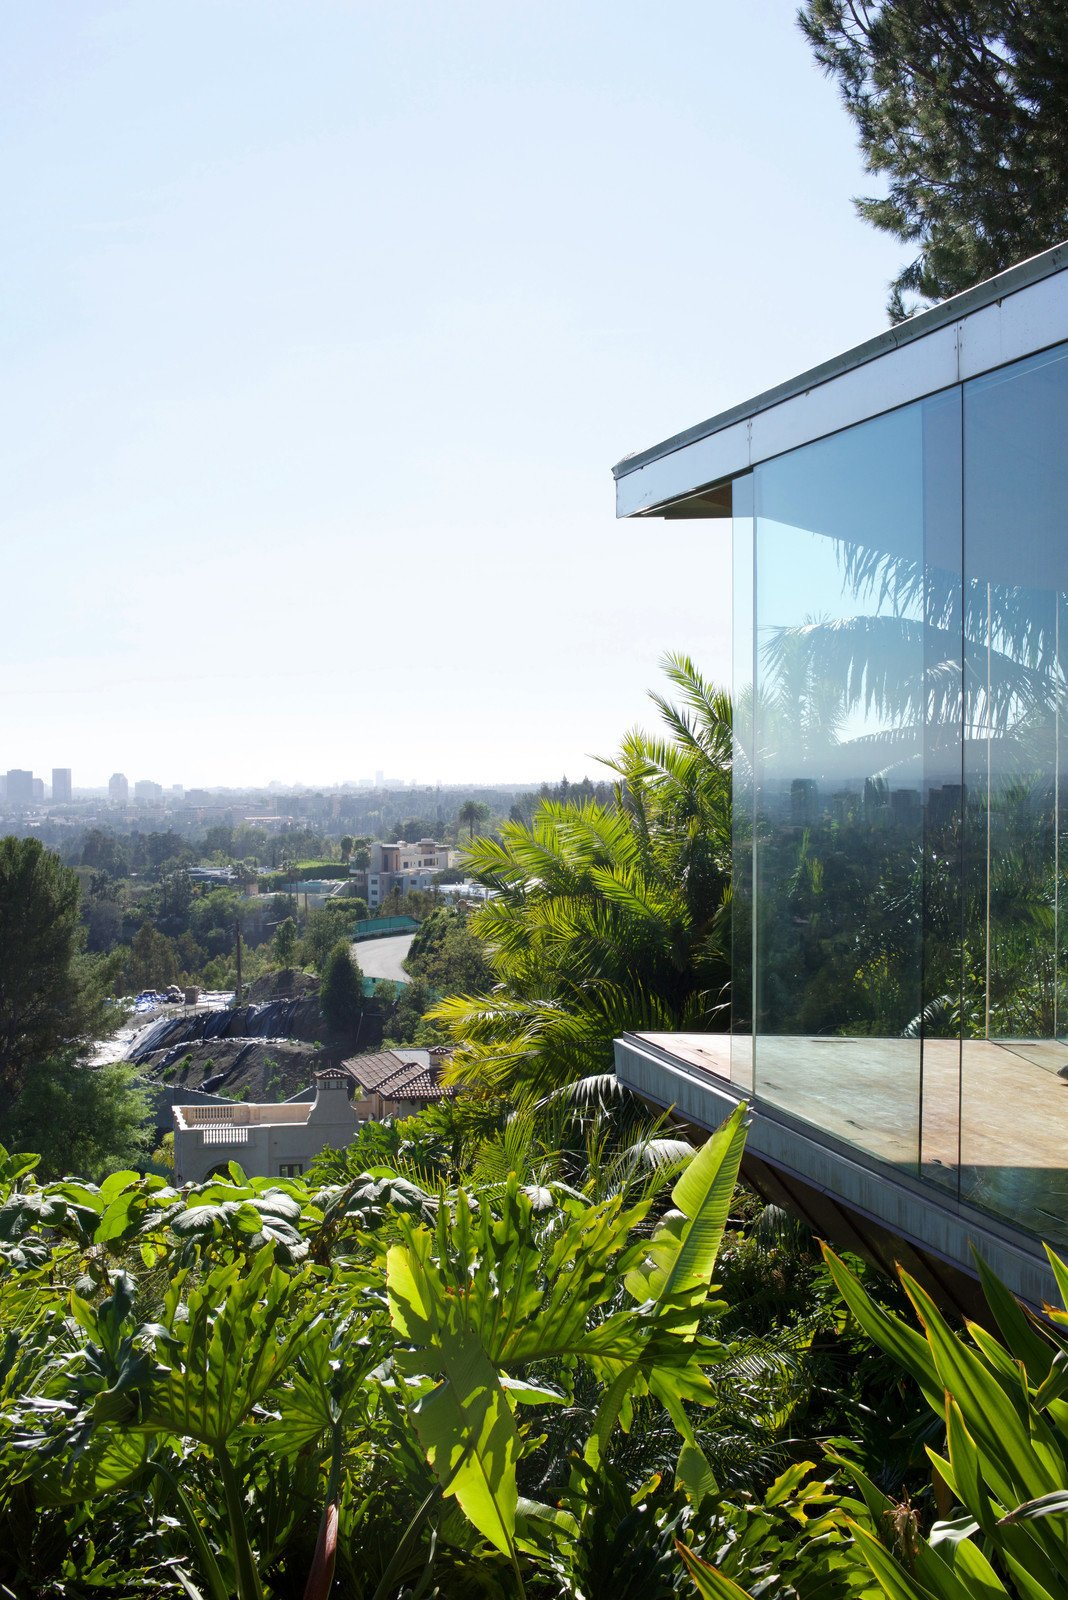 One of the first projects Goldstein and Lautner did together to renovate the house was implement seamless glass throughout the residence, which created a connection to the outdoors that remains consistent throughout the entire property. Many of the windows were updated to open automatically.  Photo 2 of 9 in Iconic Perspectives: John Lautner's Sheats-Goldstein Residence